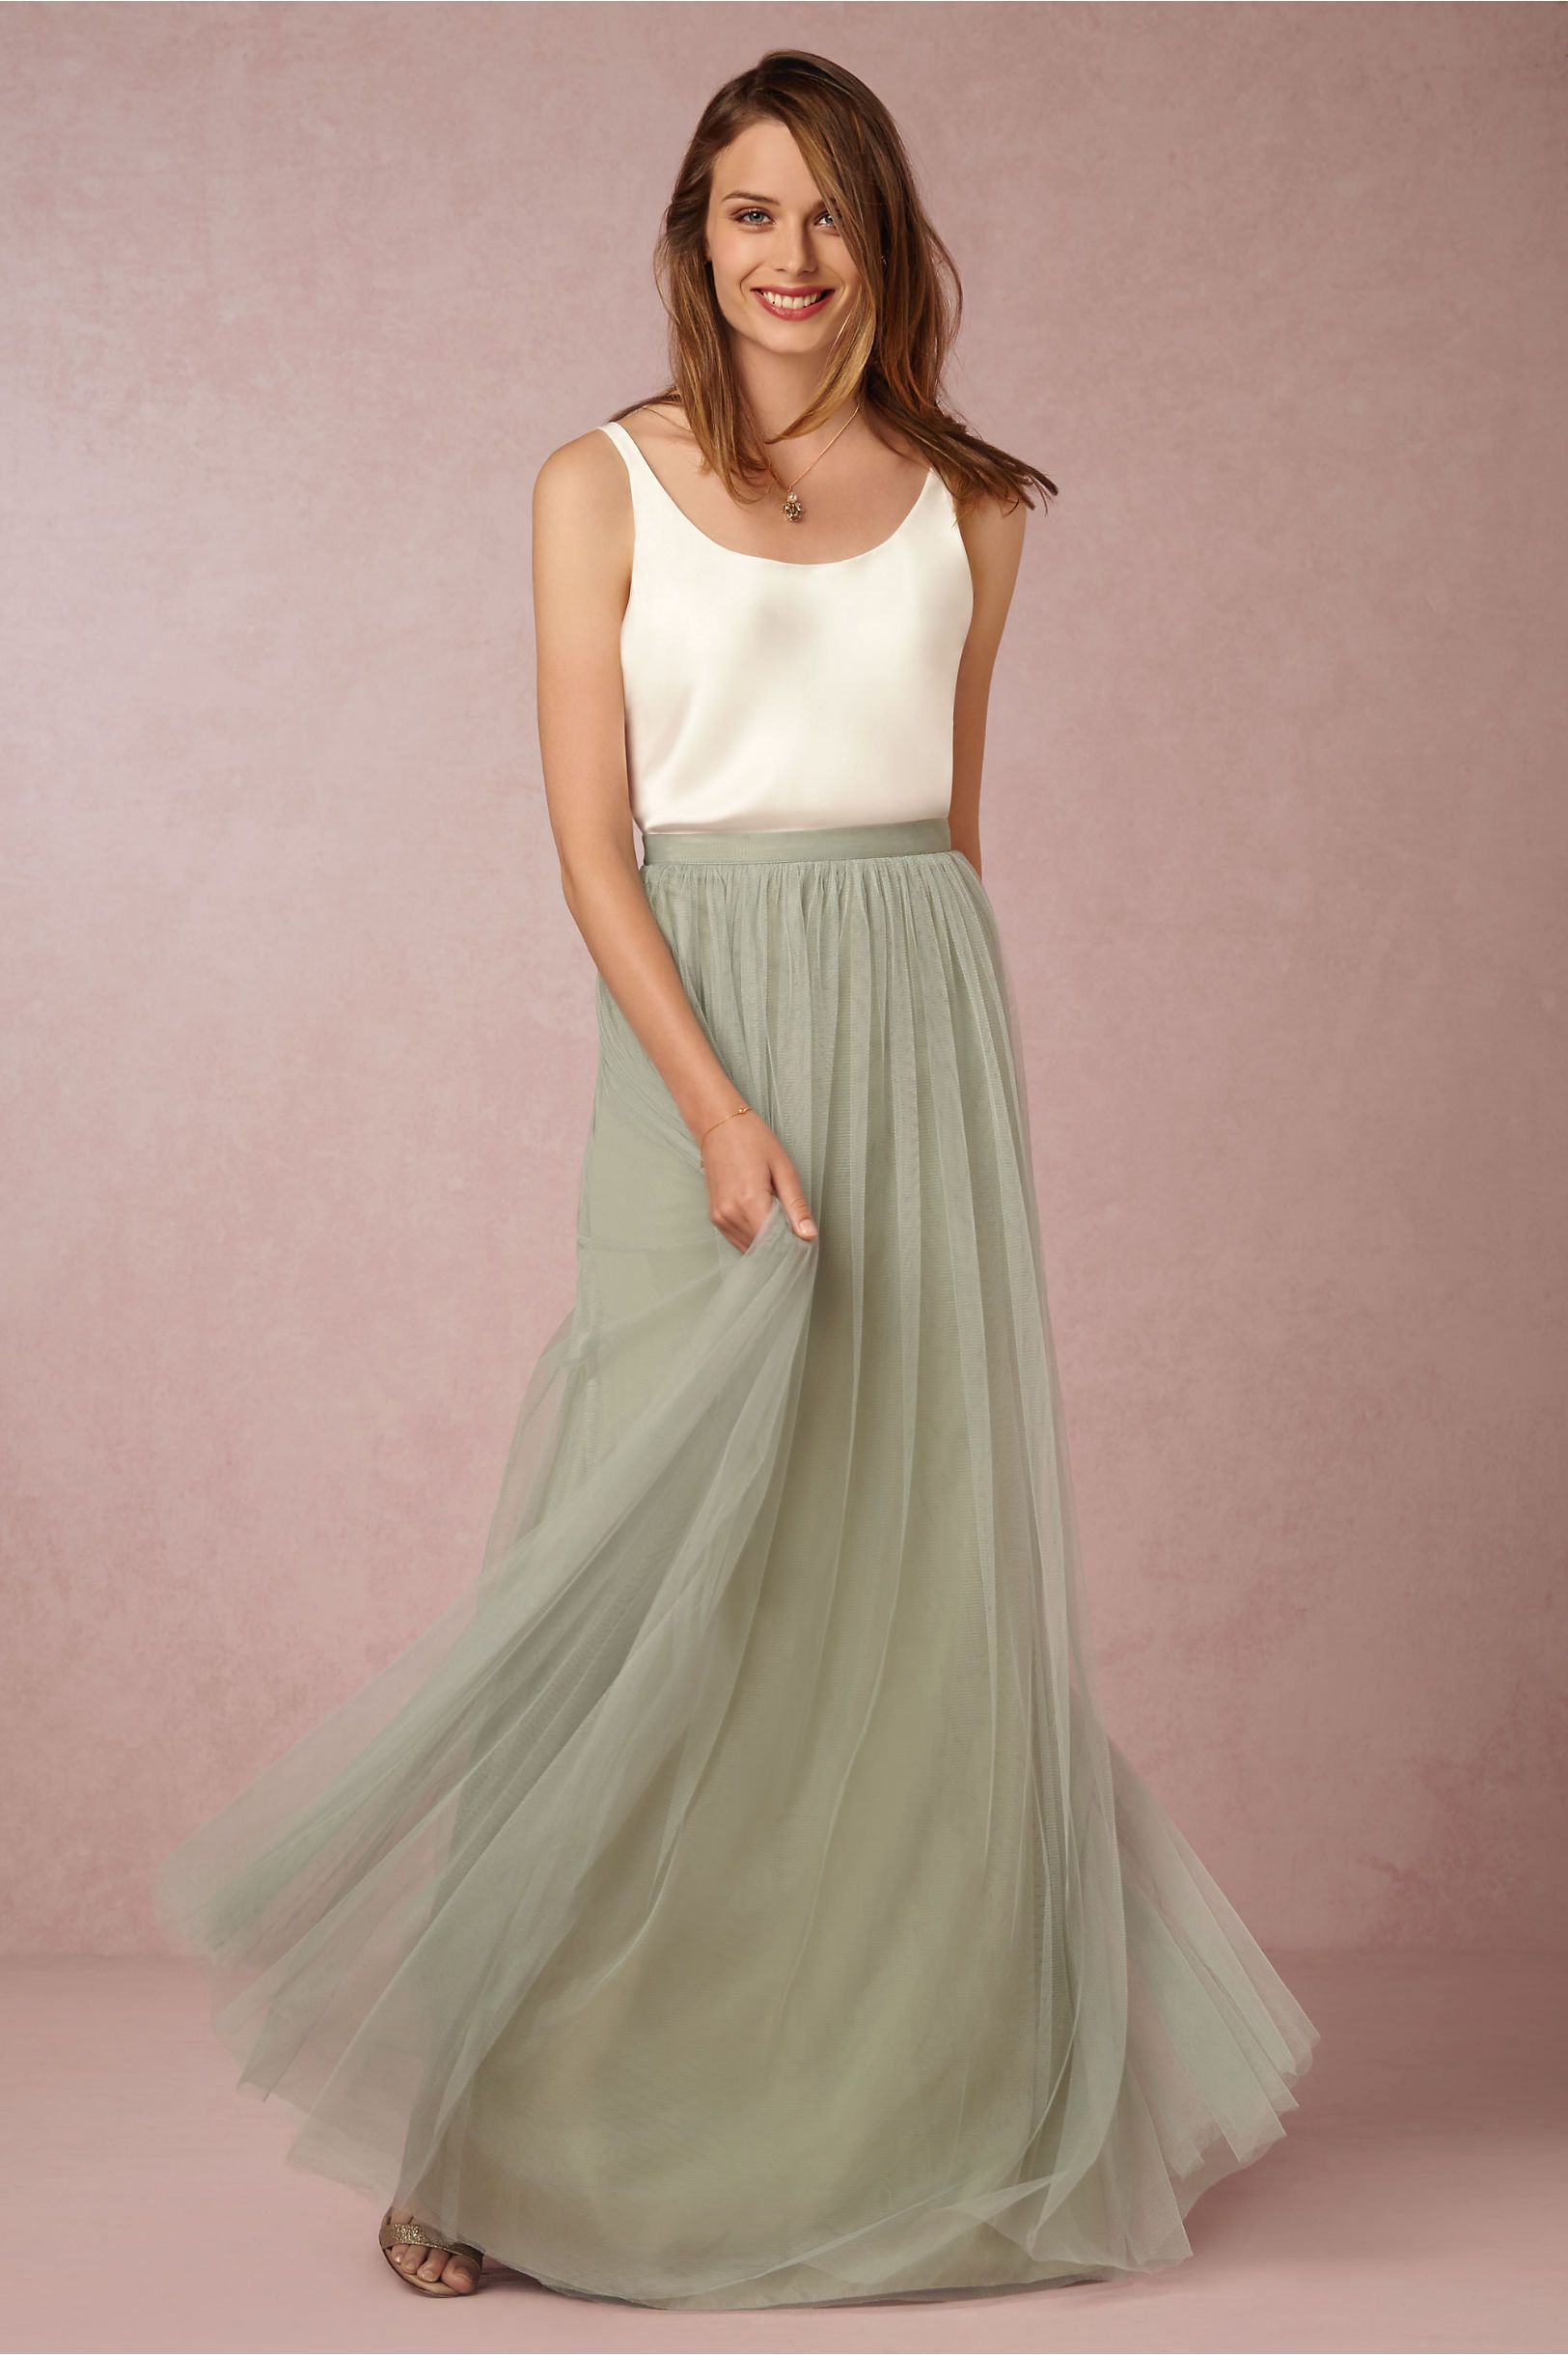 Green White Wedding  wedding  Pinterest  Tulle skirts Maids and